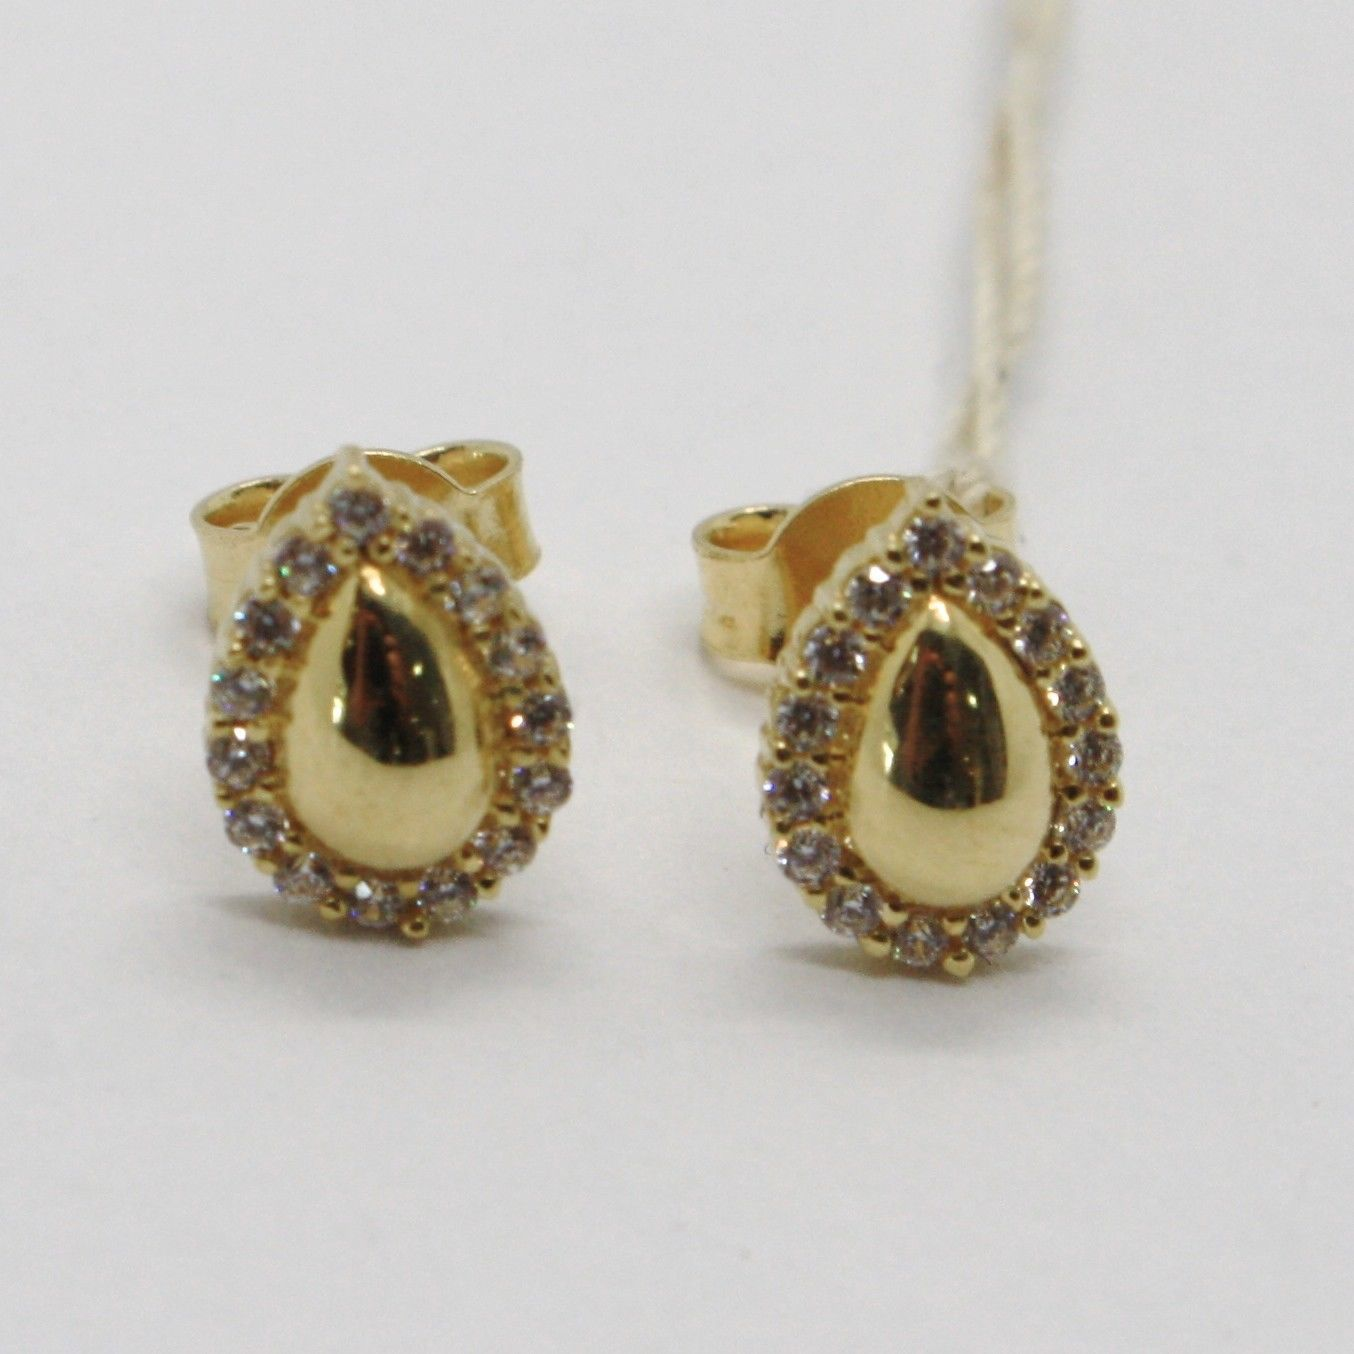 18K YELLOW GOLD EARRINGS, DROP WITH ZIRCONIA, LENGTH 9 MM, MADE IN ITALY